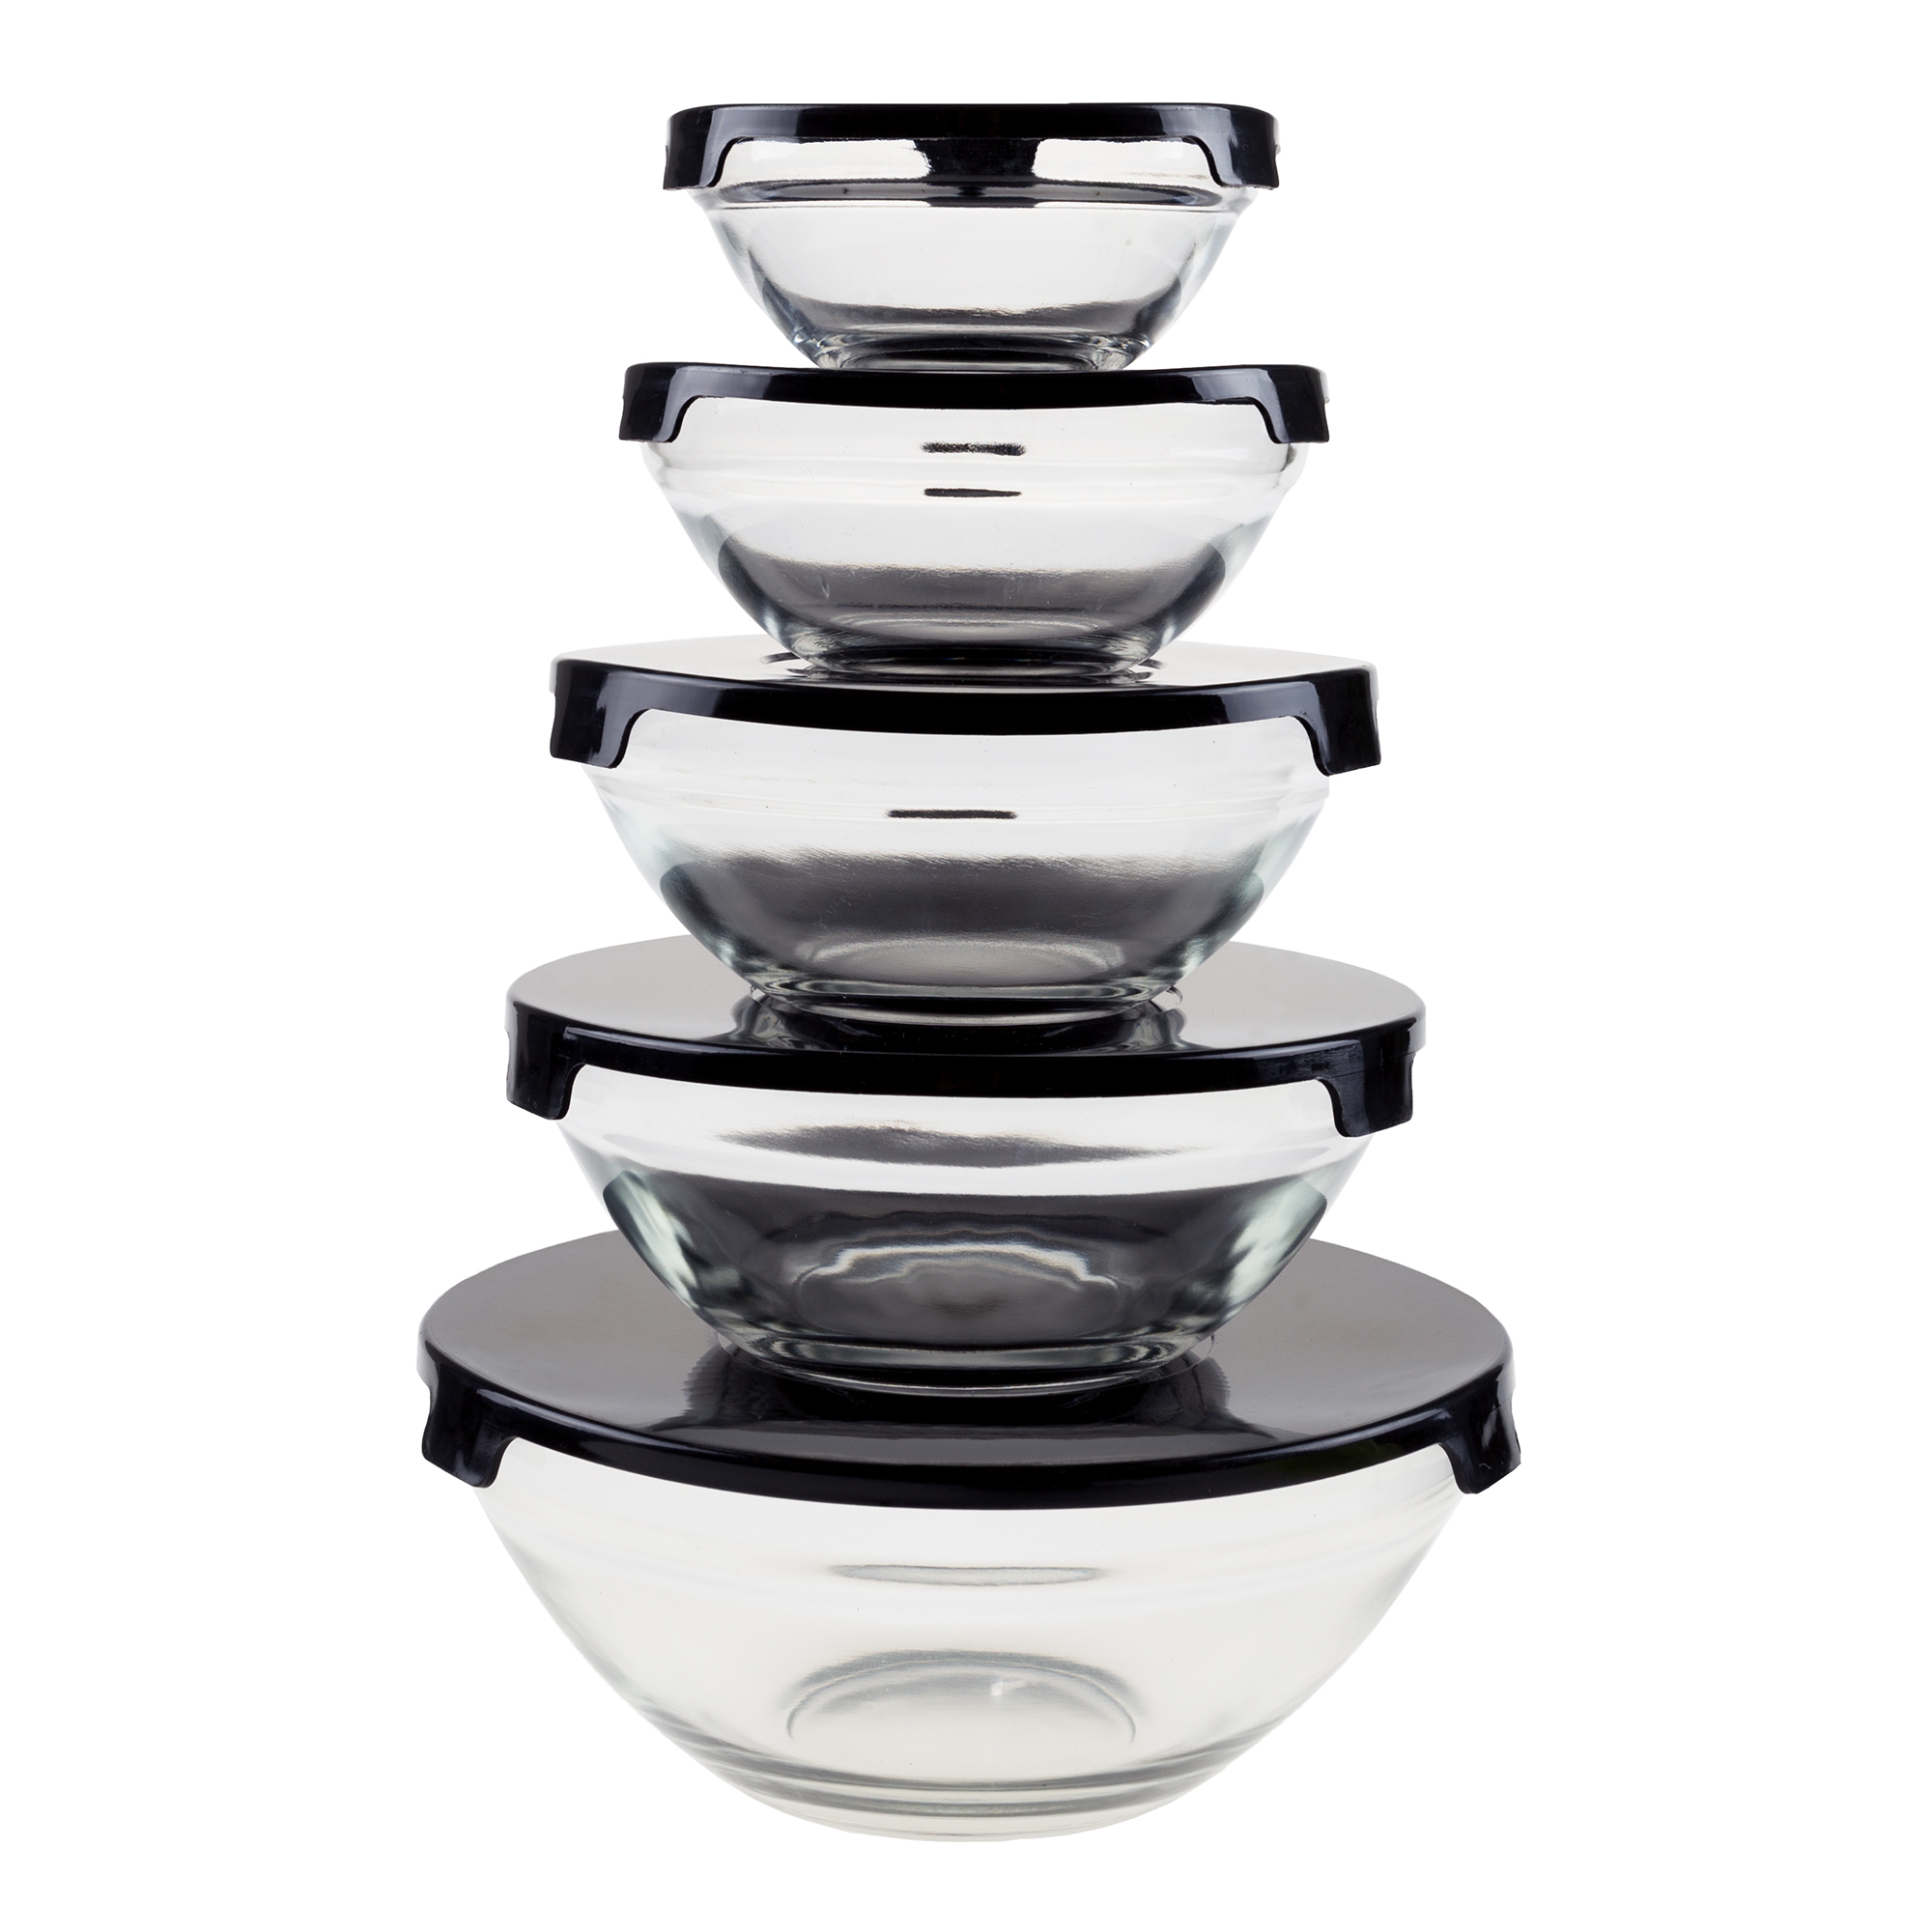 Glass Food Storage Containers with Snap Lids- 10 Piece Set by Chef Buddy (Black)